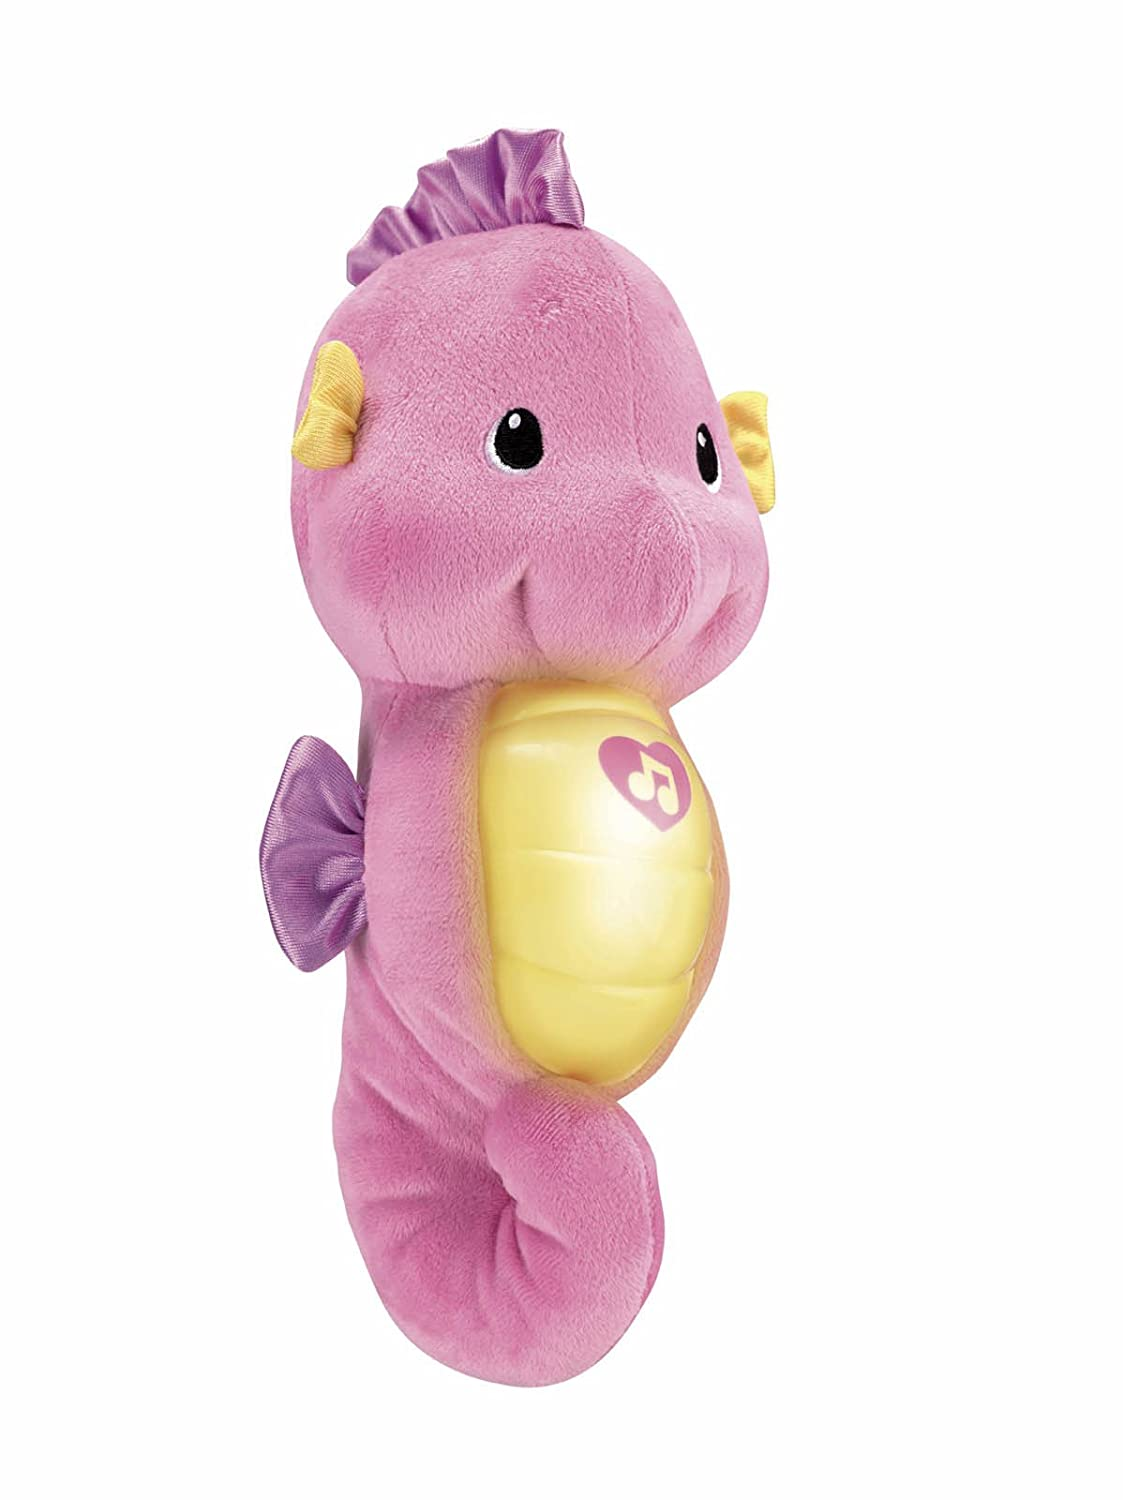 [Amazon]Fisher-Price Soothe and Glow Seahorse $11.99